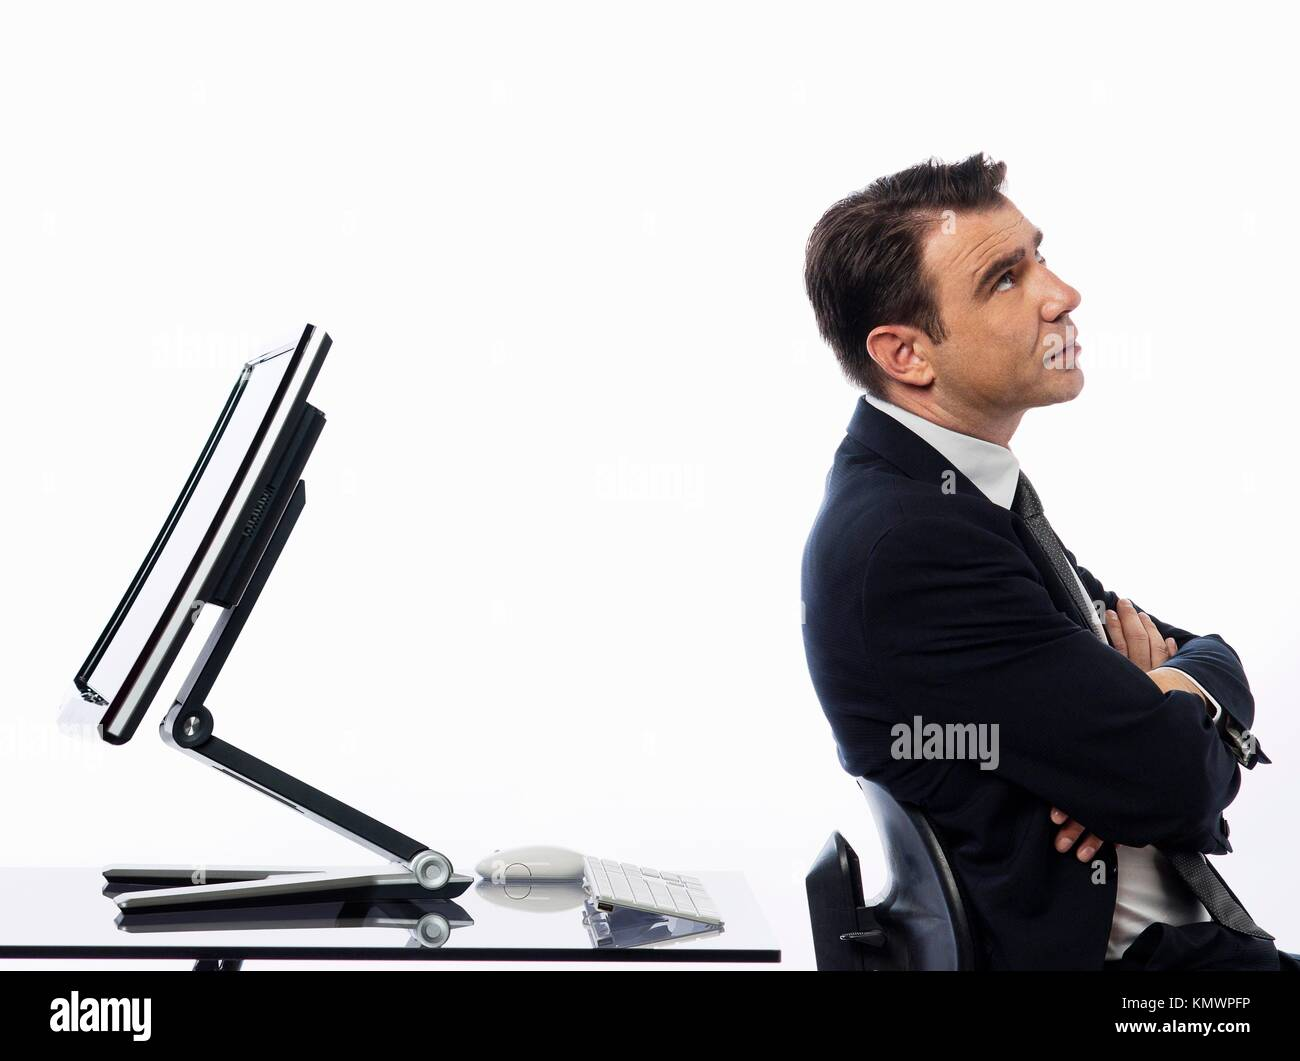 relationship between a caucasian man and a computer display monitor on isolated white background expressing conflict - Stock Image